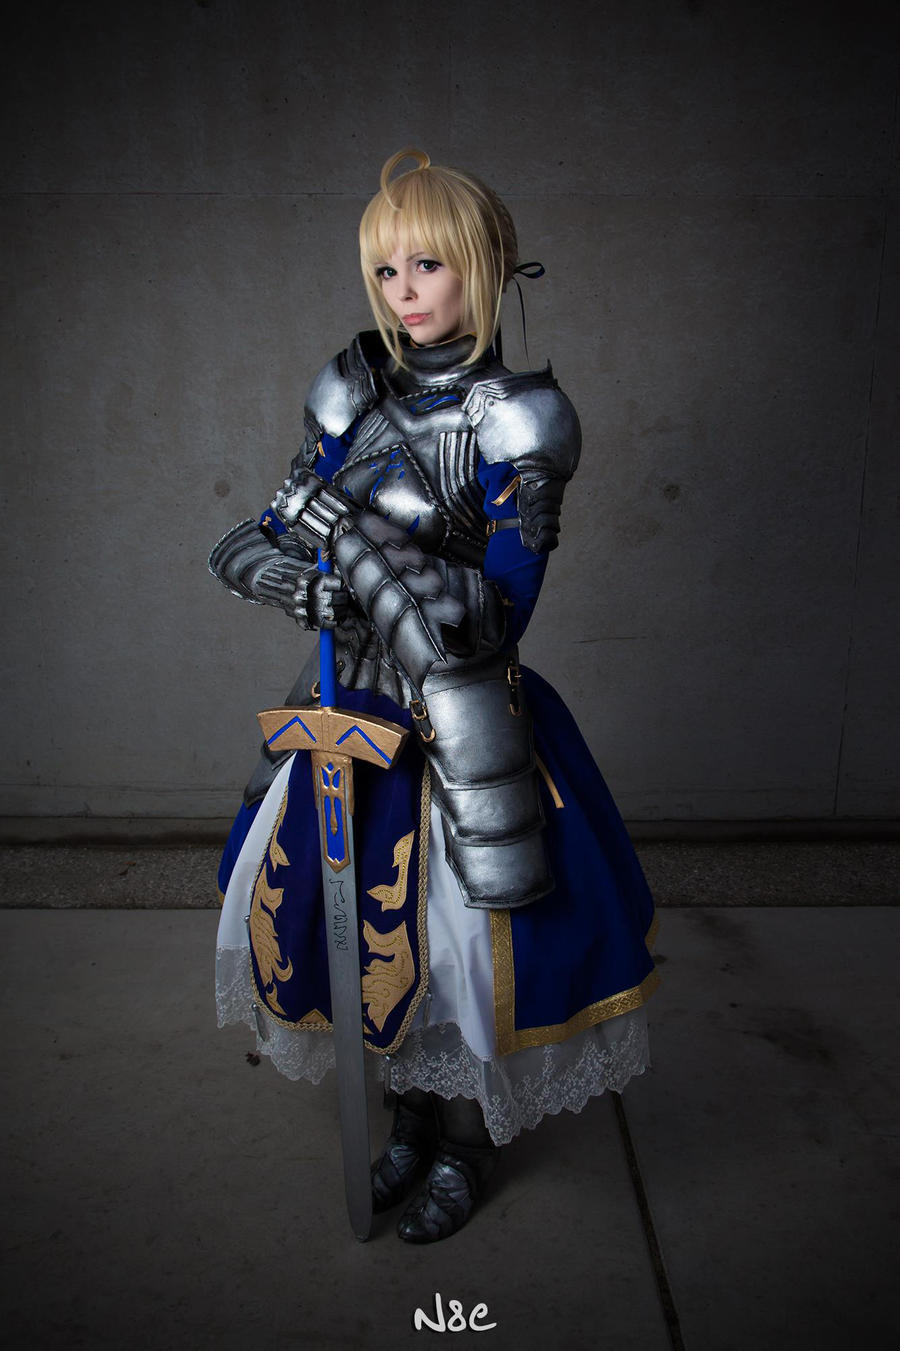 Fate/Stay Night - Saber (Gift version)